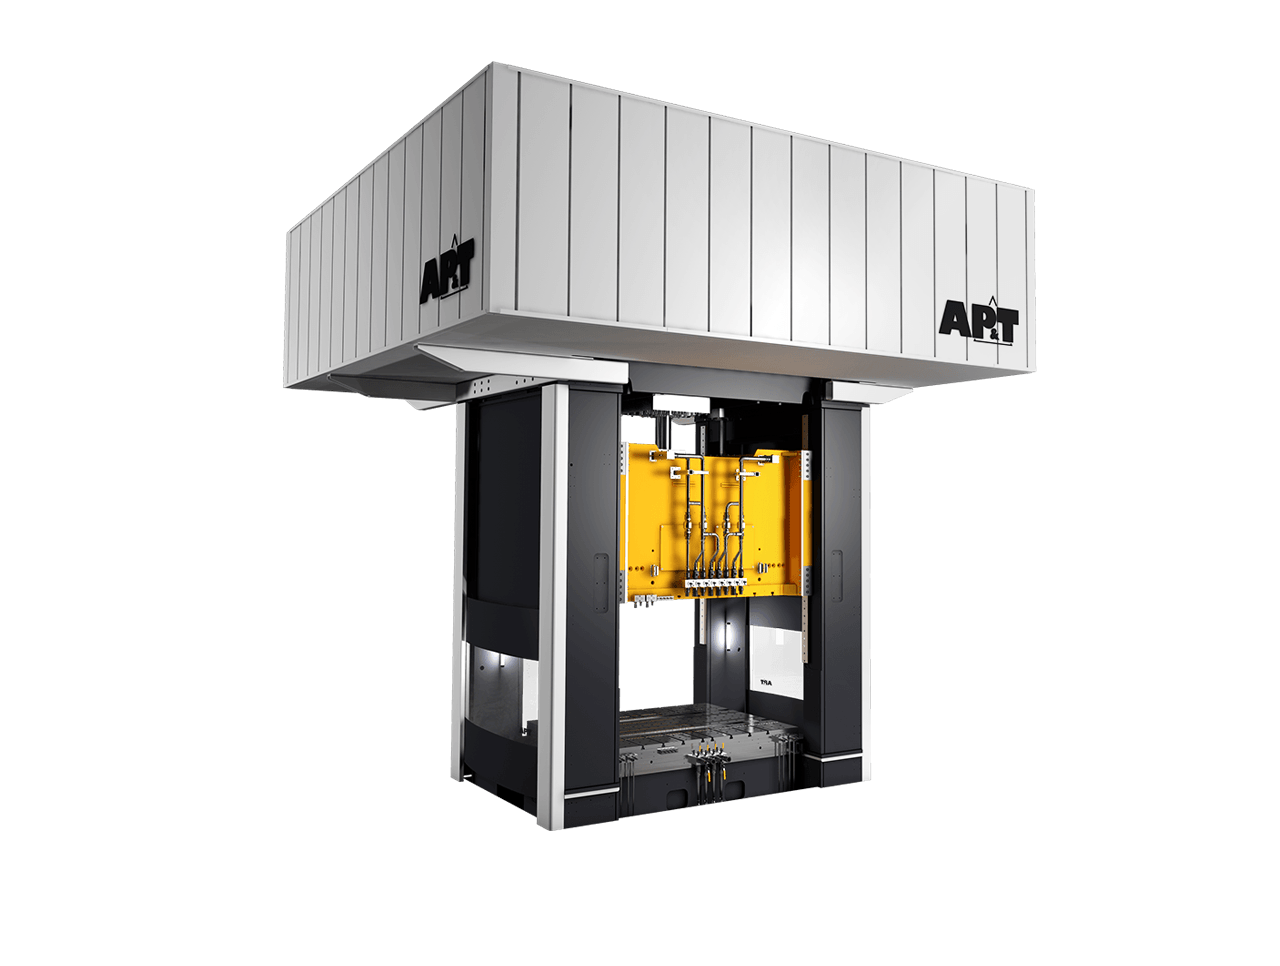 AP&T's servo hydraulic press is not only quicker and more energy efficient than conventional hydraulic presses, it is also a powerful alternative to servo mechanical presses.